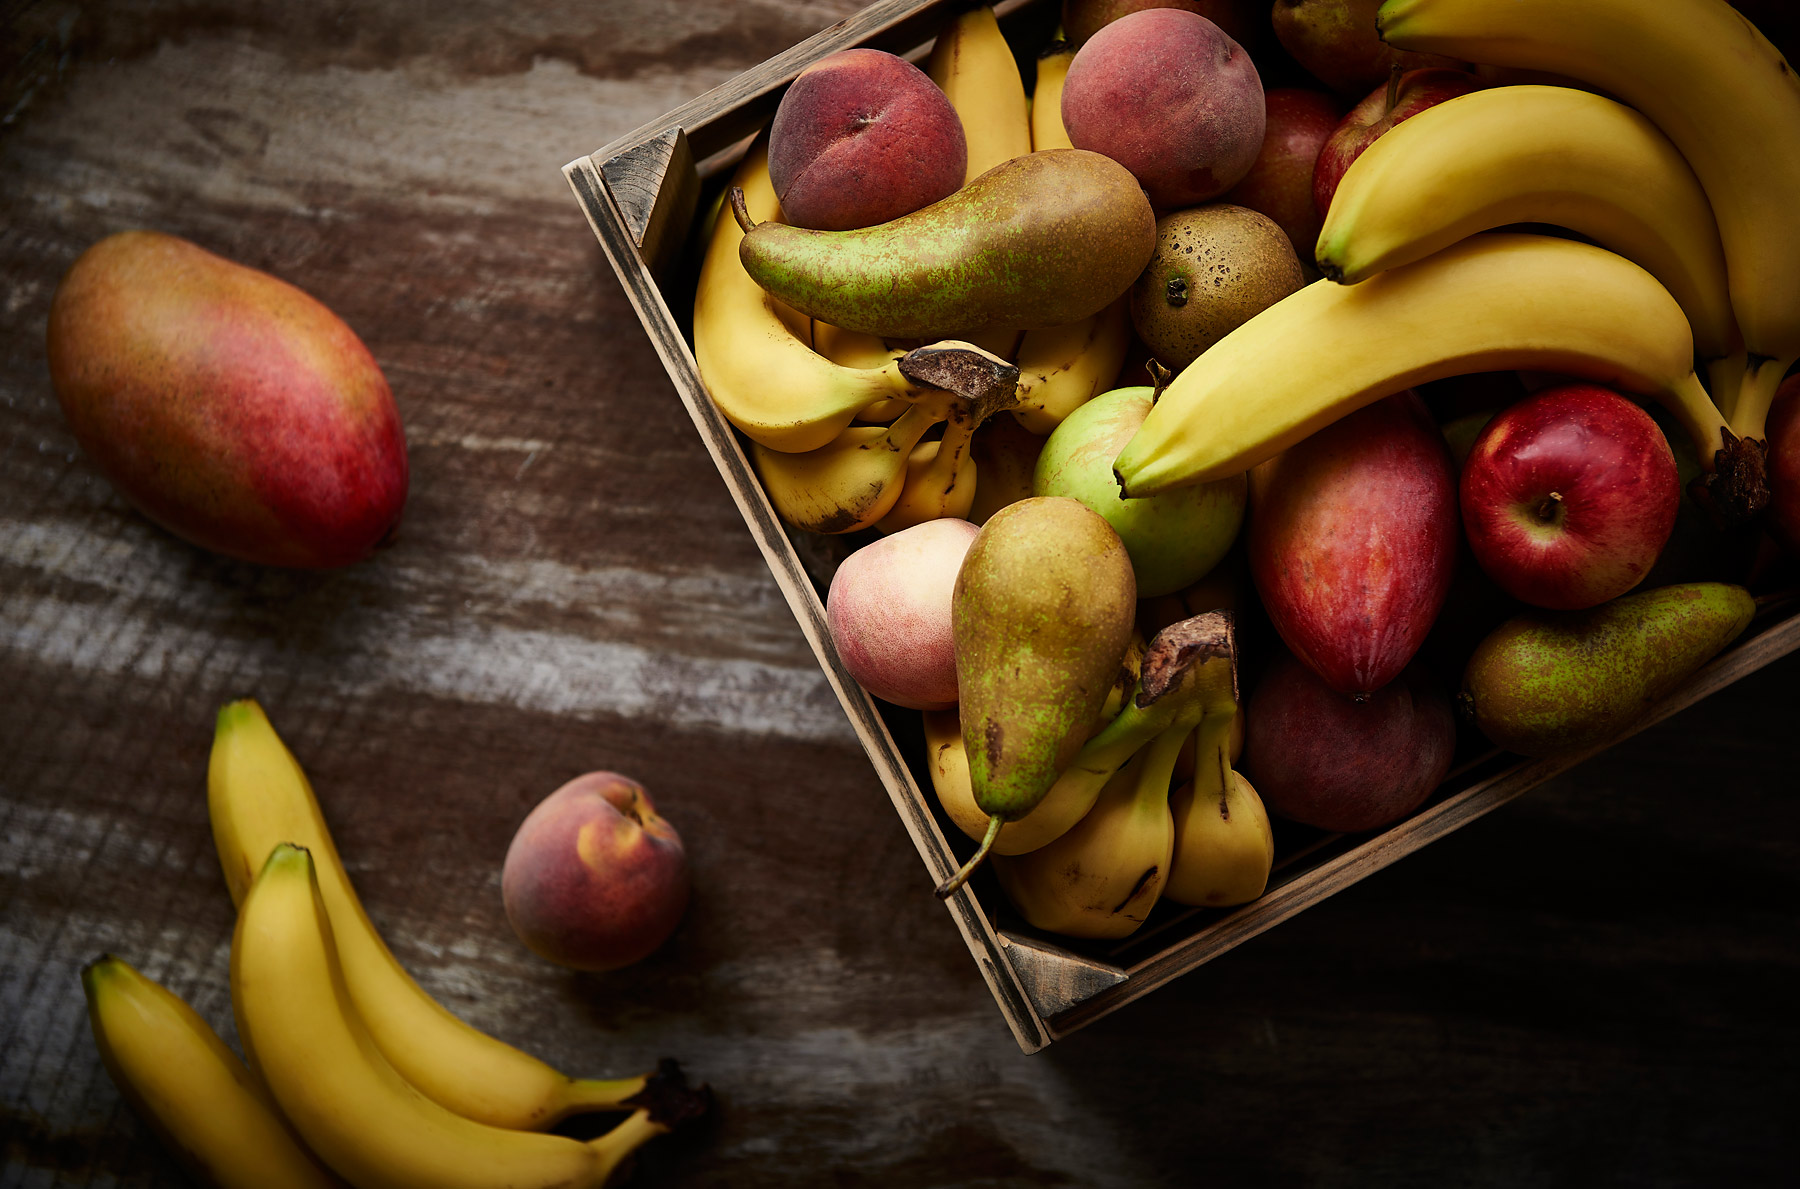 A crate of bananas, apples, pears and other fruit on a wooden background